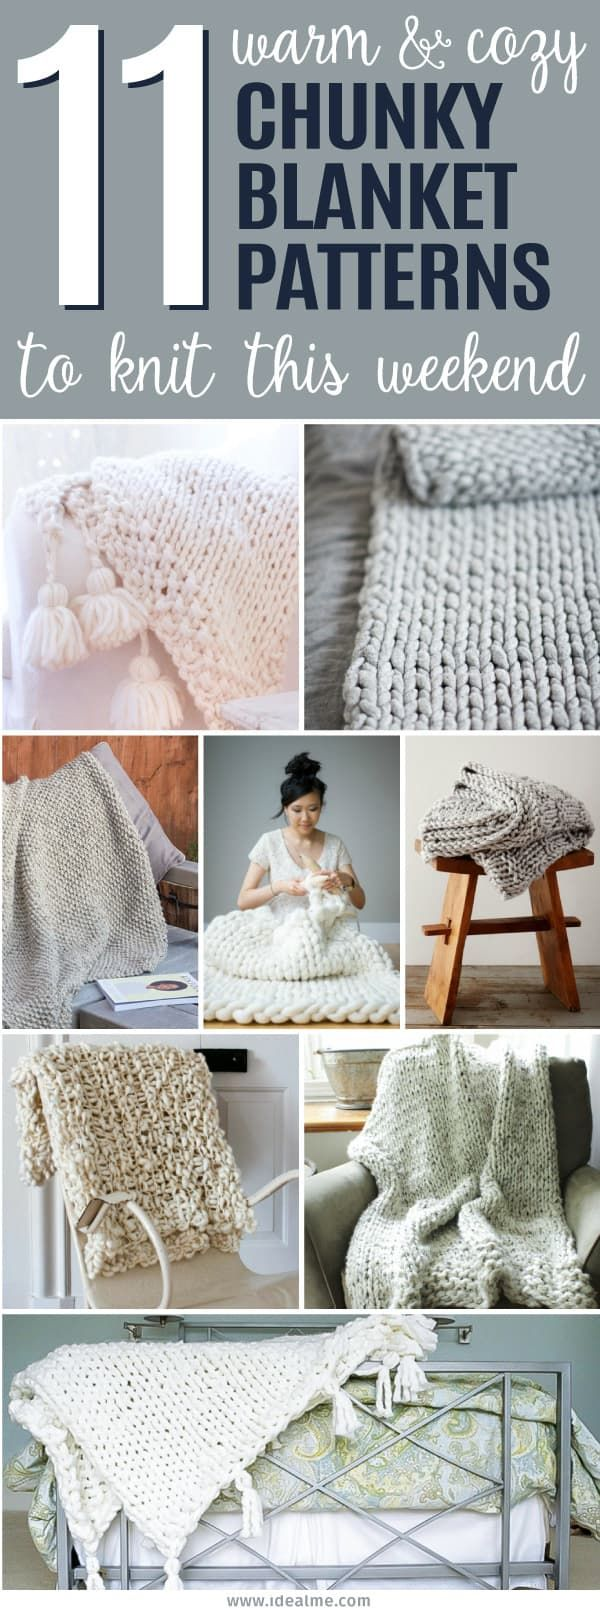 11 cozy chunky blankets youll want to knit this weekend 11 cozy chunky blankets youll want to knit this weekend bankloansurffo Choice Image